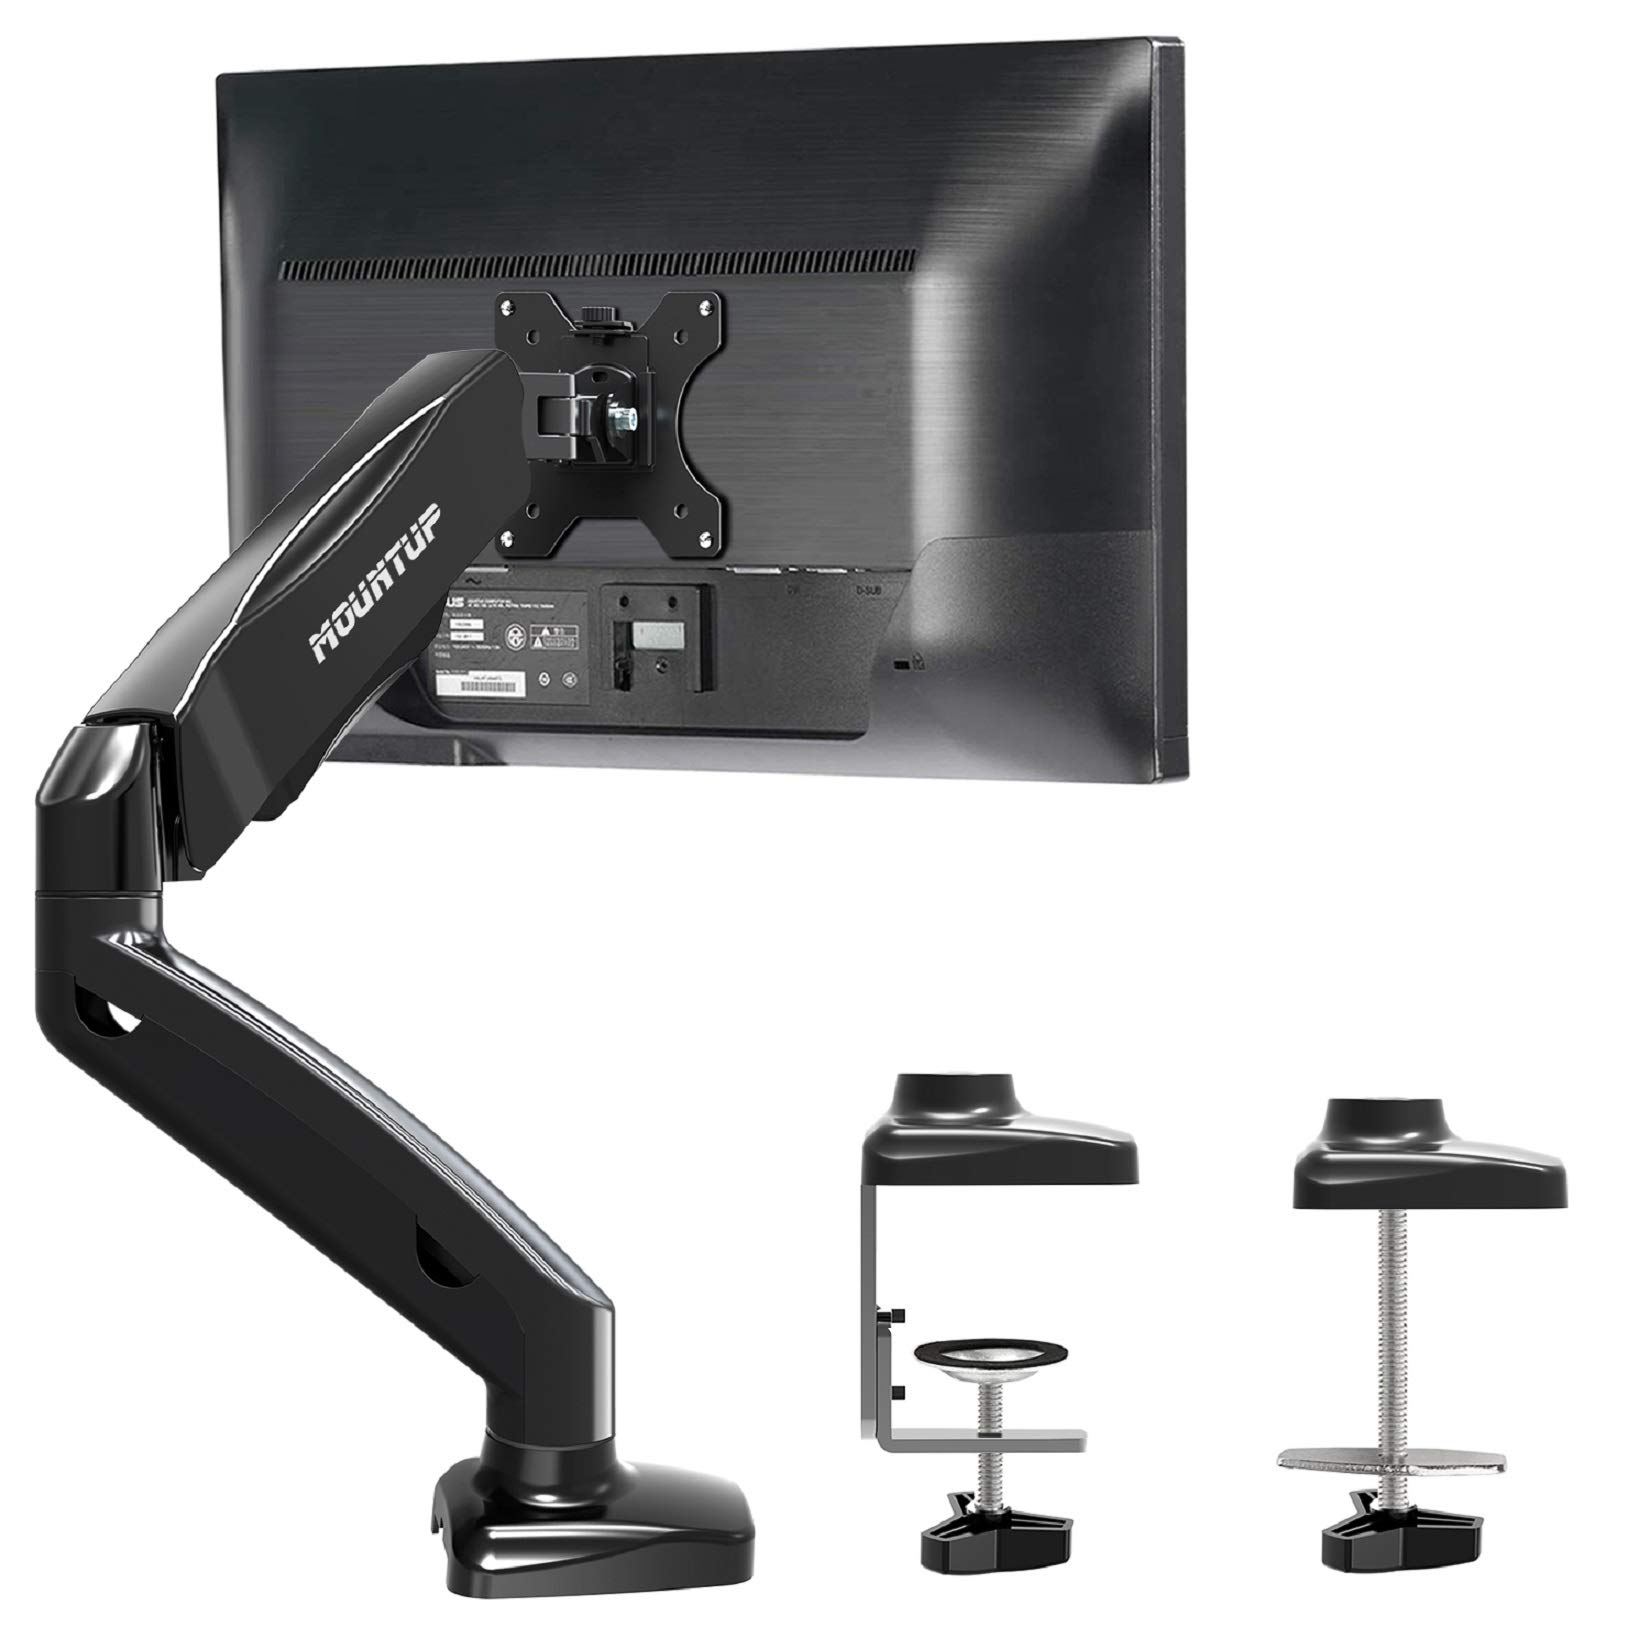 MOUNTUP Single Monitor Desk Mount - Adjustable Gas Spring Monitor Arm, VESA Mount with C Clamp, Grommet Mounting Base, Computer Monitor Stand for Screen up to 32 inch, MU0004